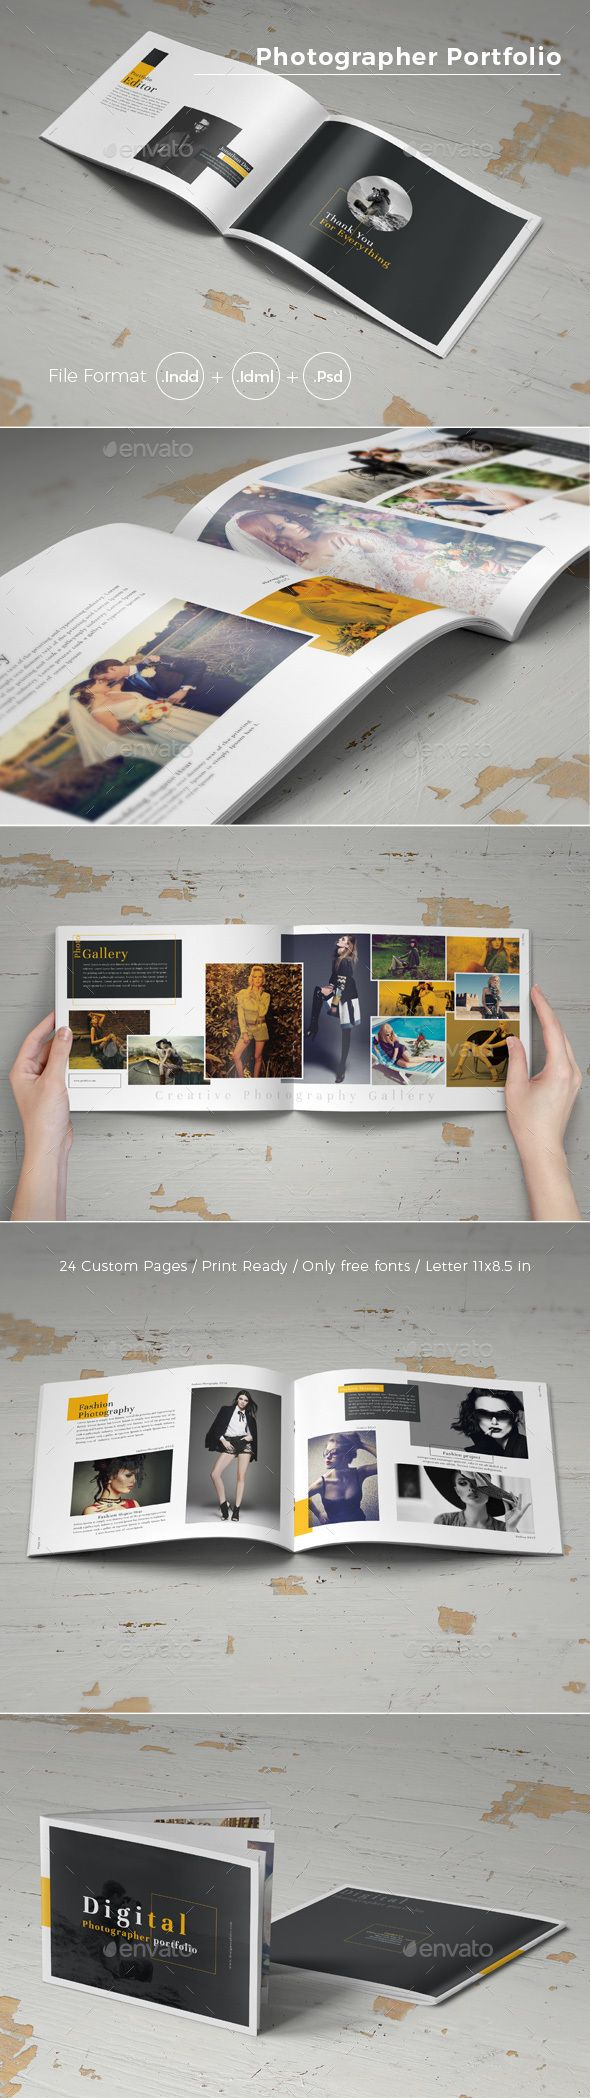 Photographer Portfolio Brochure Template PSD, InDesign INDD - 24 Custom Pages, US Letter Size